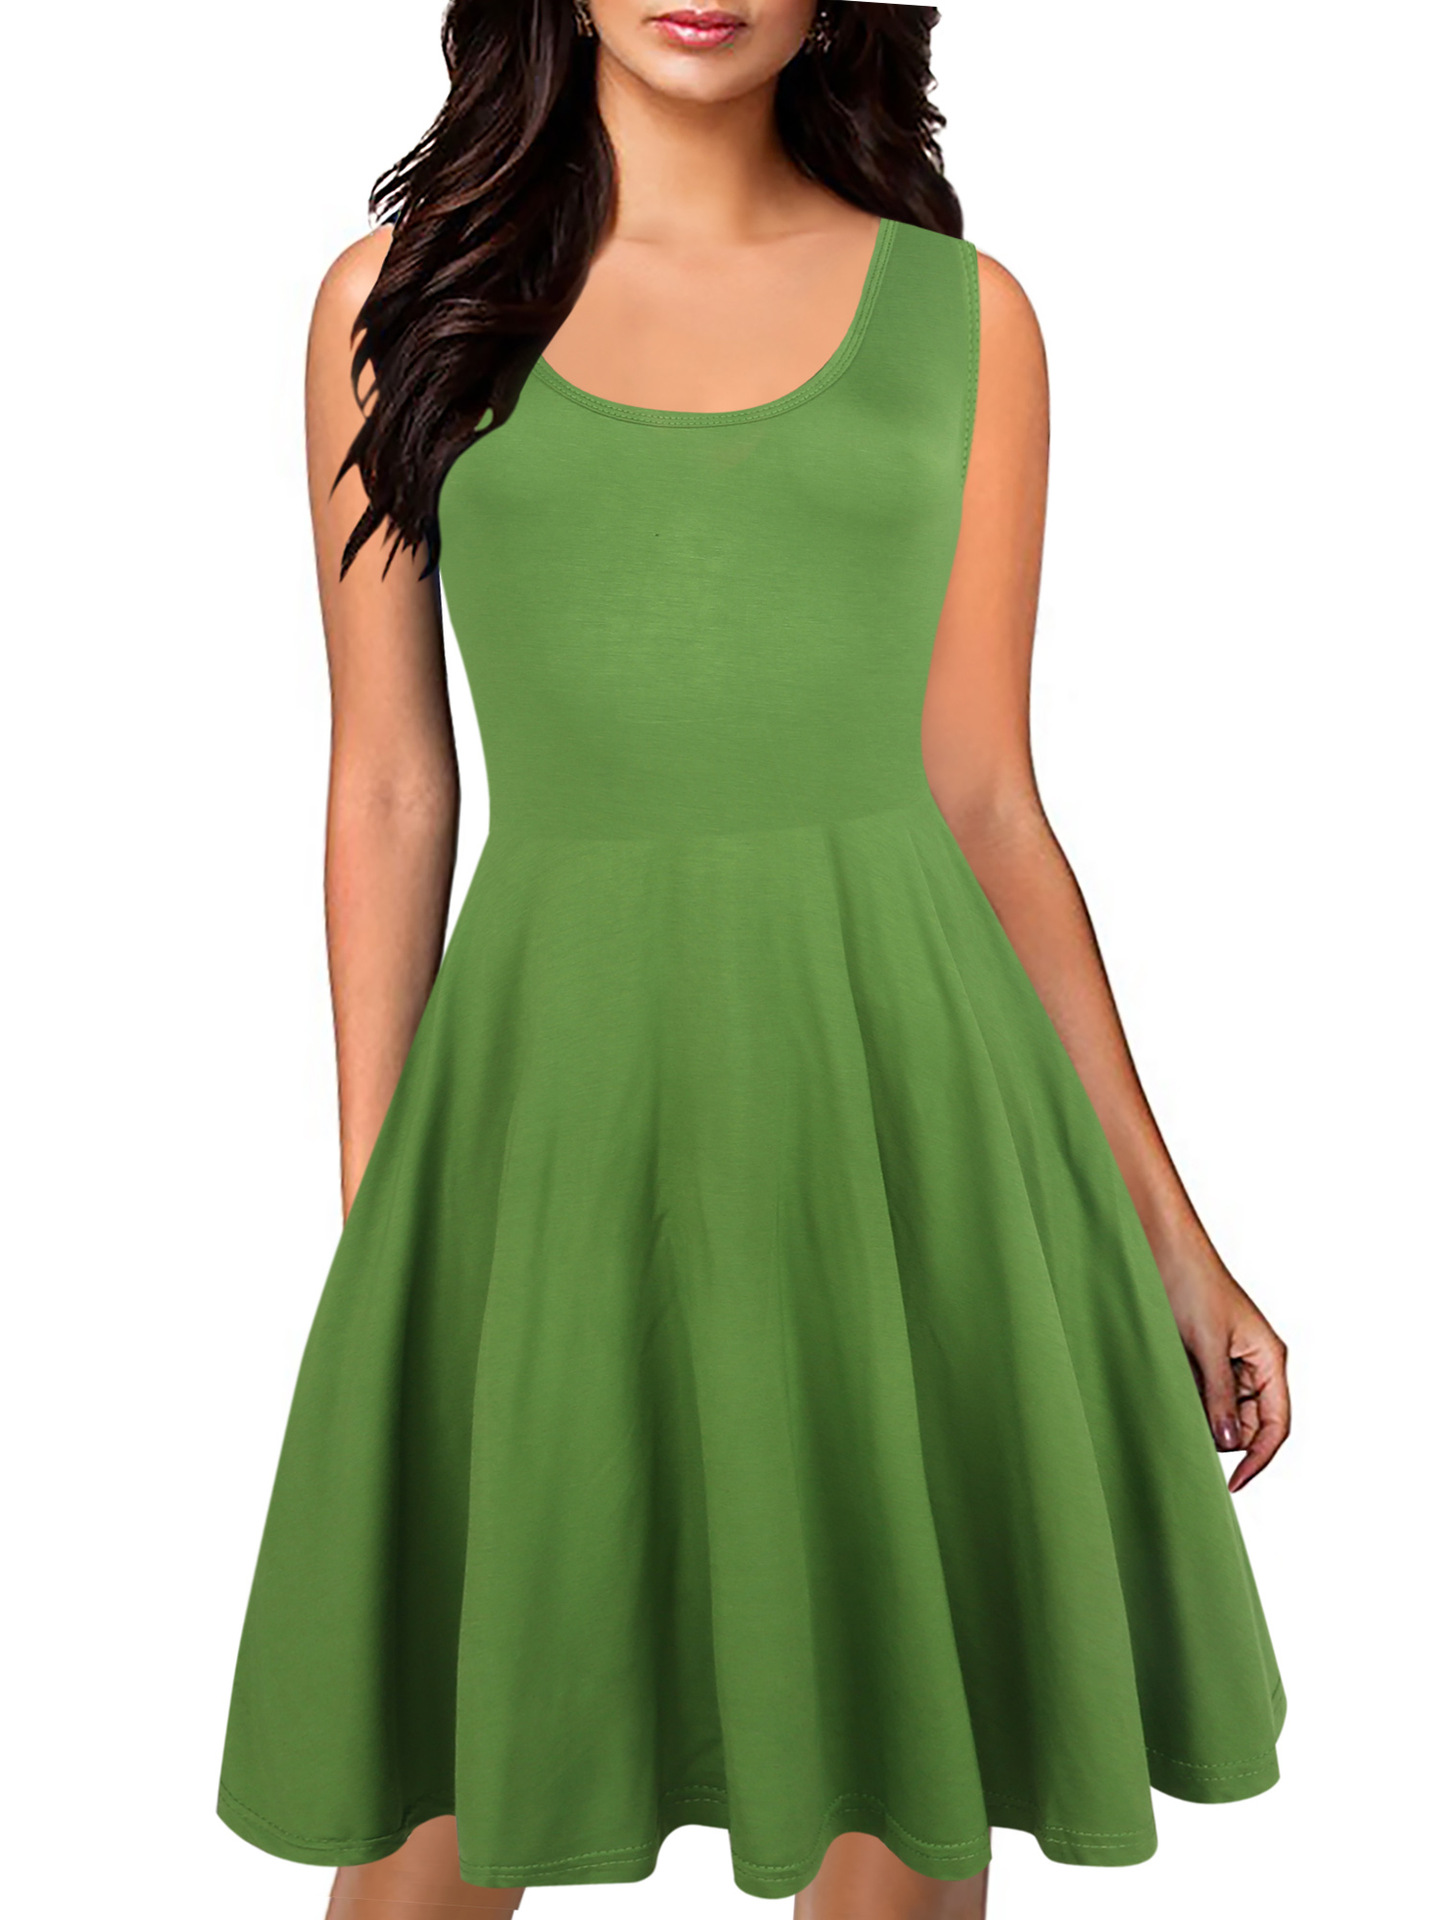 2017 New Summer Dress Women Sexy Dresses Sleeveless Casual Slim Bodycon Dress Summer Solid Color Green Color Dress Vestidos J591